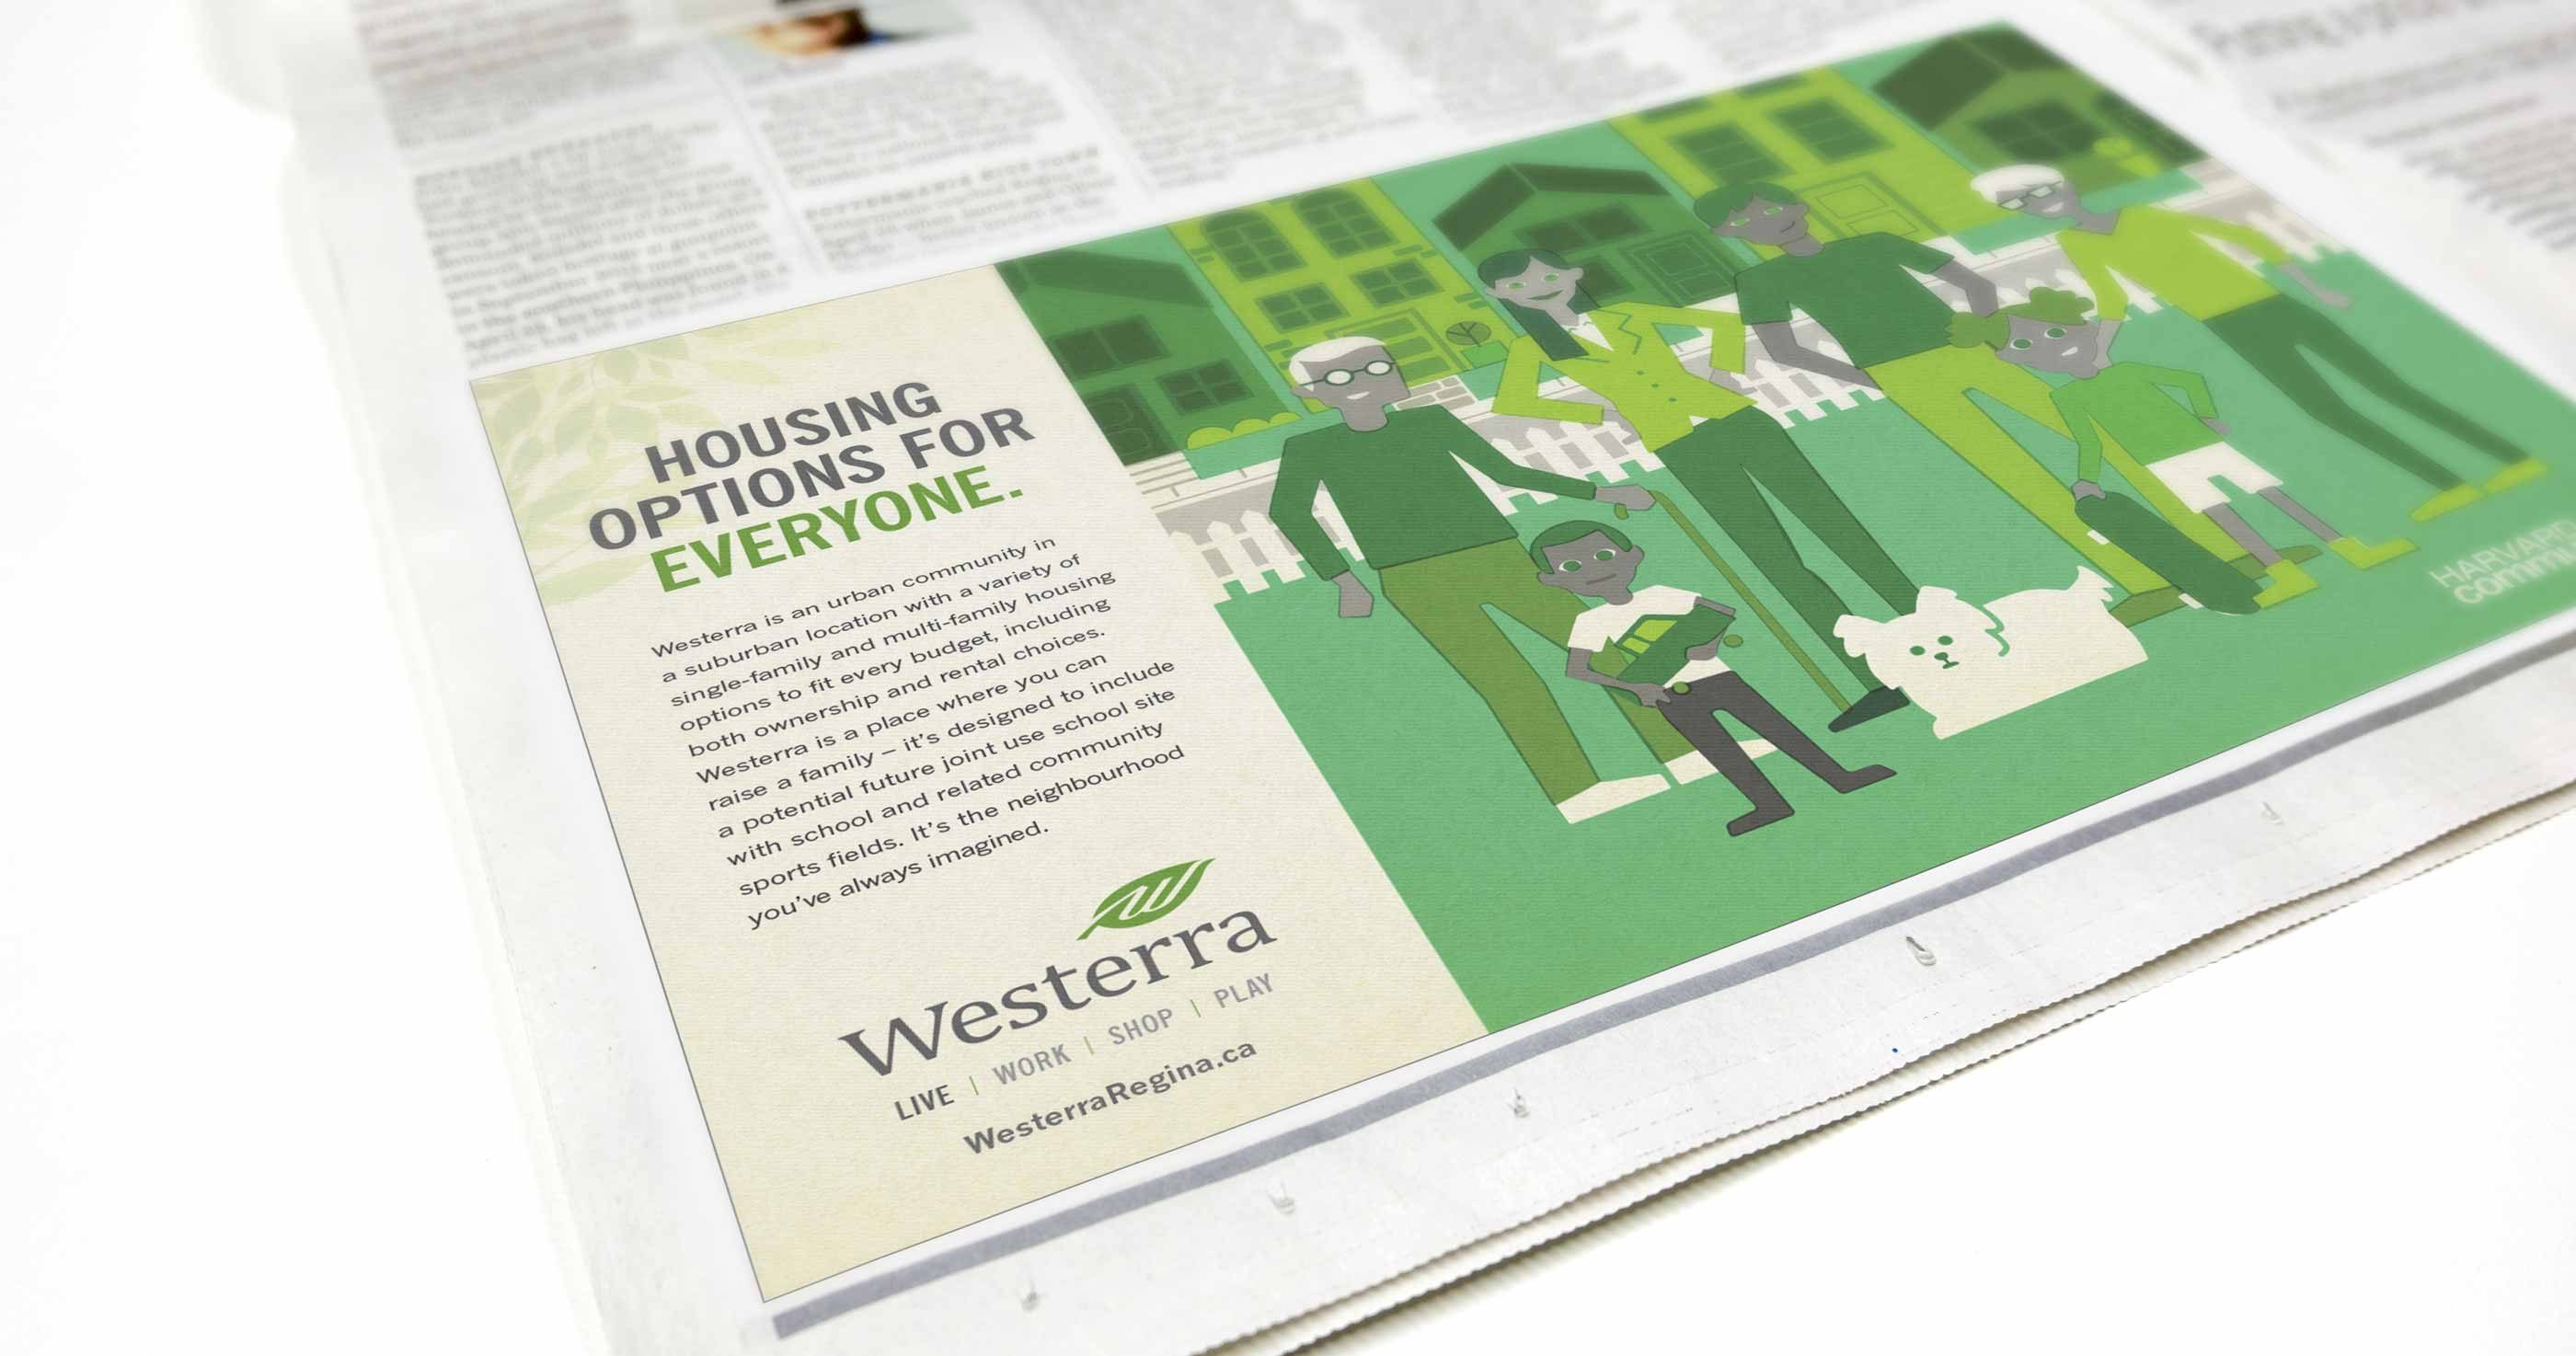 Work - Westerra Newspaper Ad Live